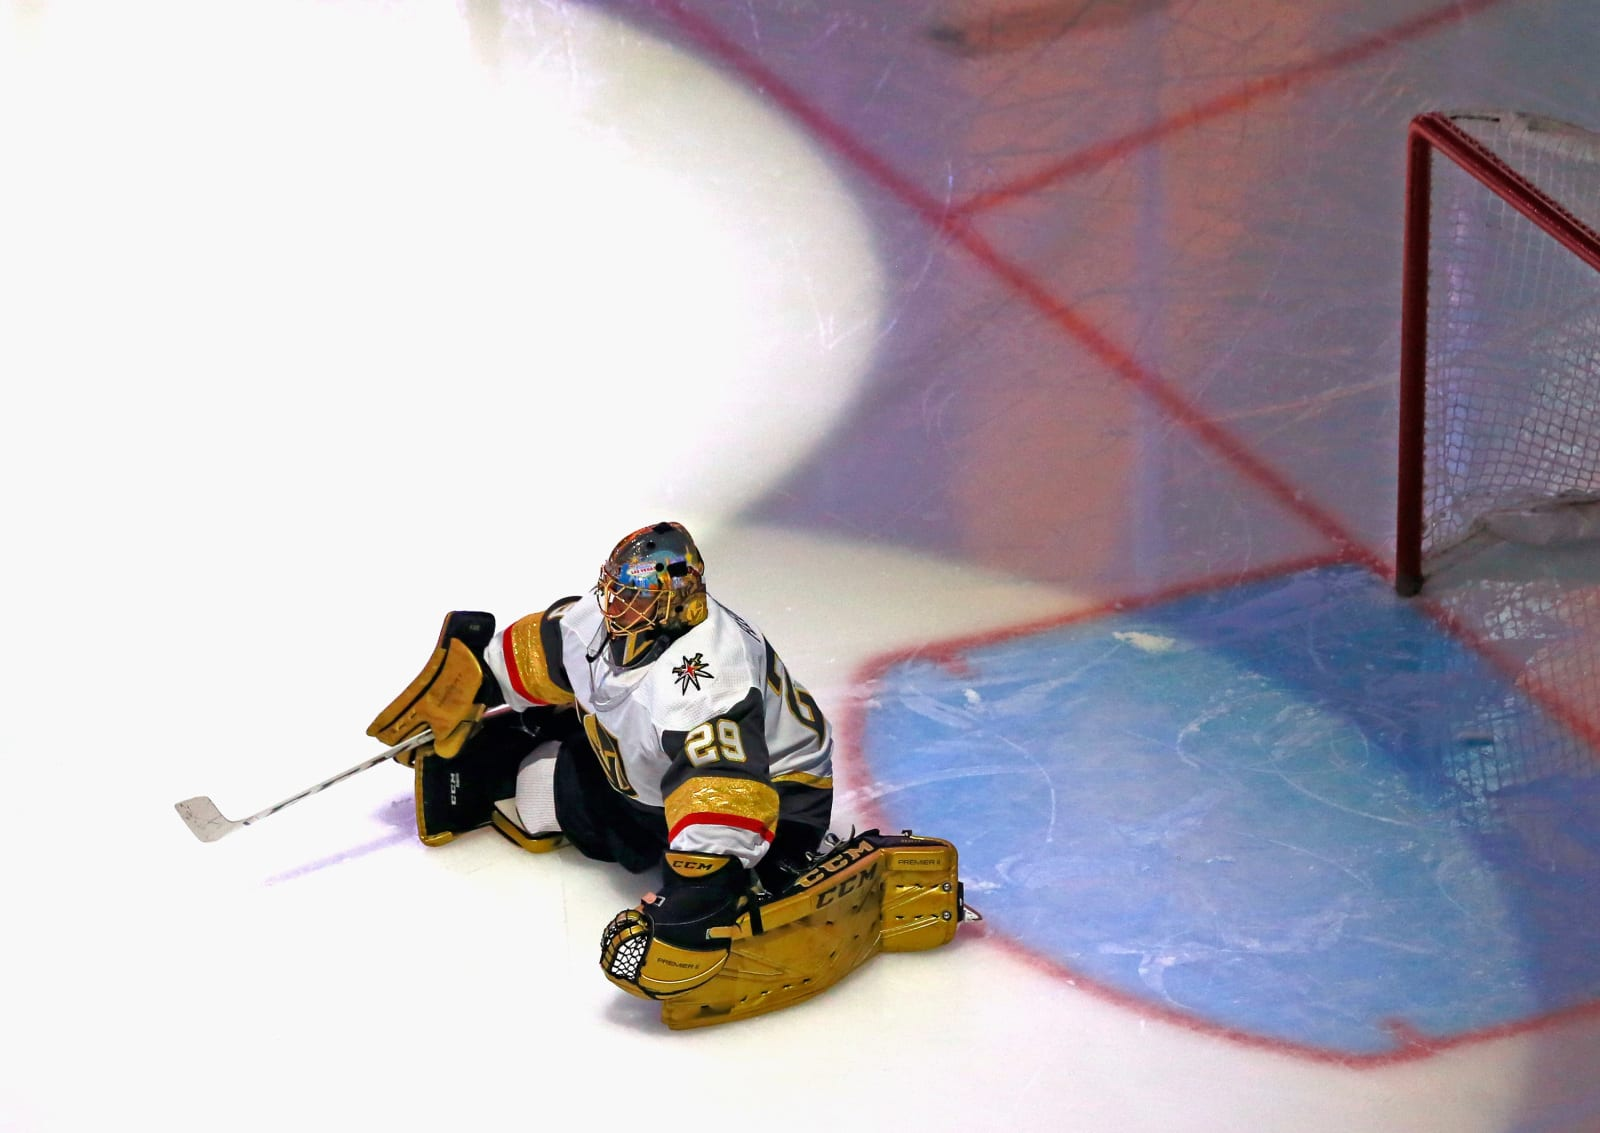 Marc-Andre Fleury #29 of the Vegas Golden Knights prepares to play against the Chicago Blackhawks